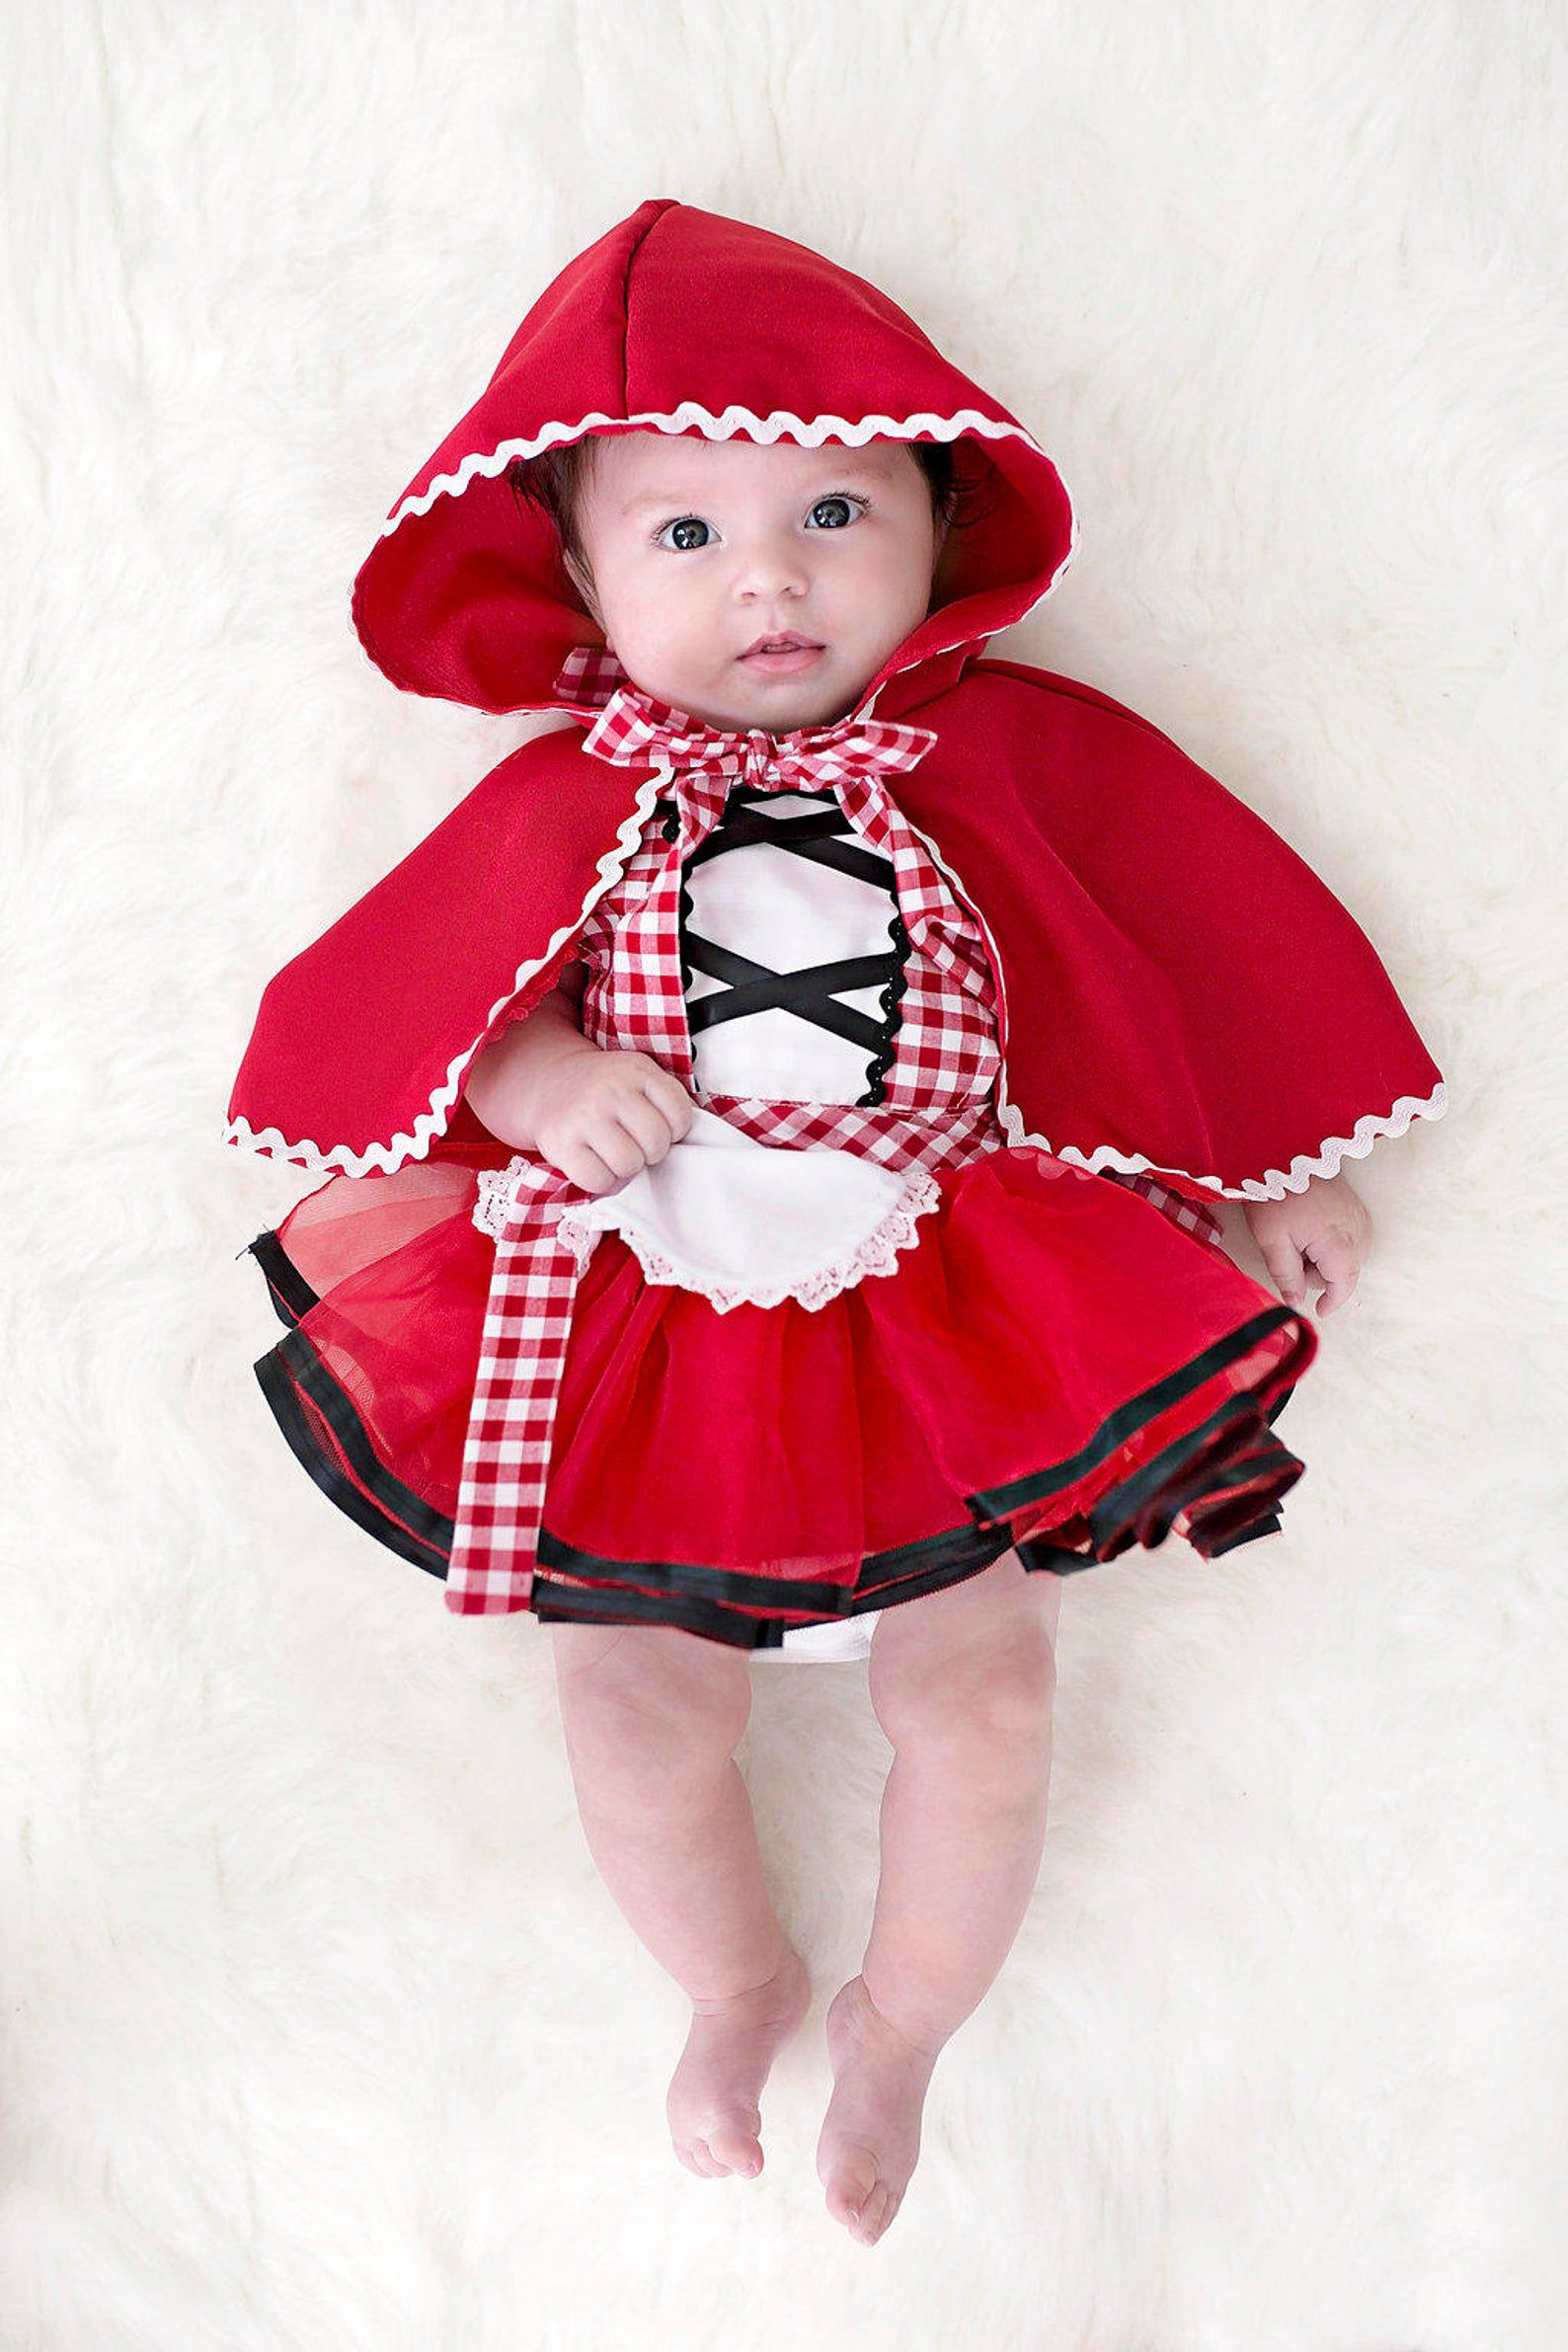 Image of a baby in a Little Red Riding Hood costume.